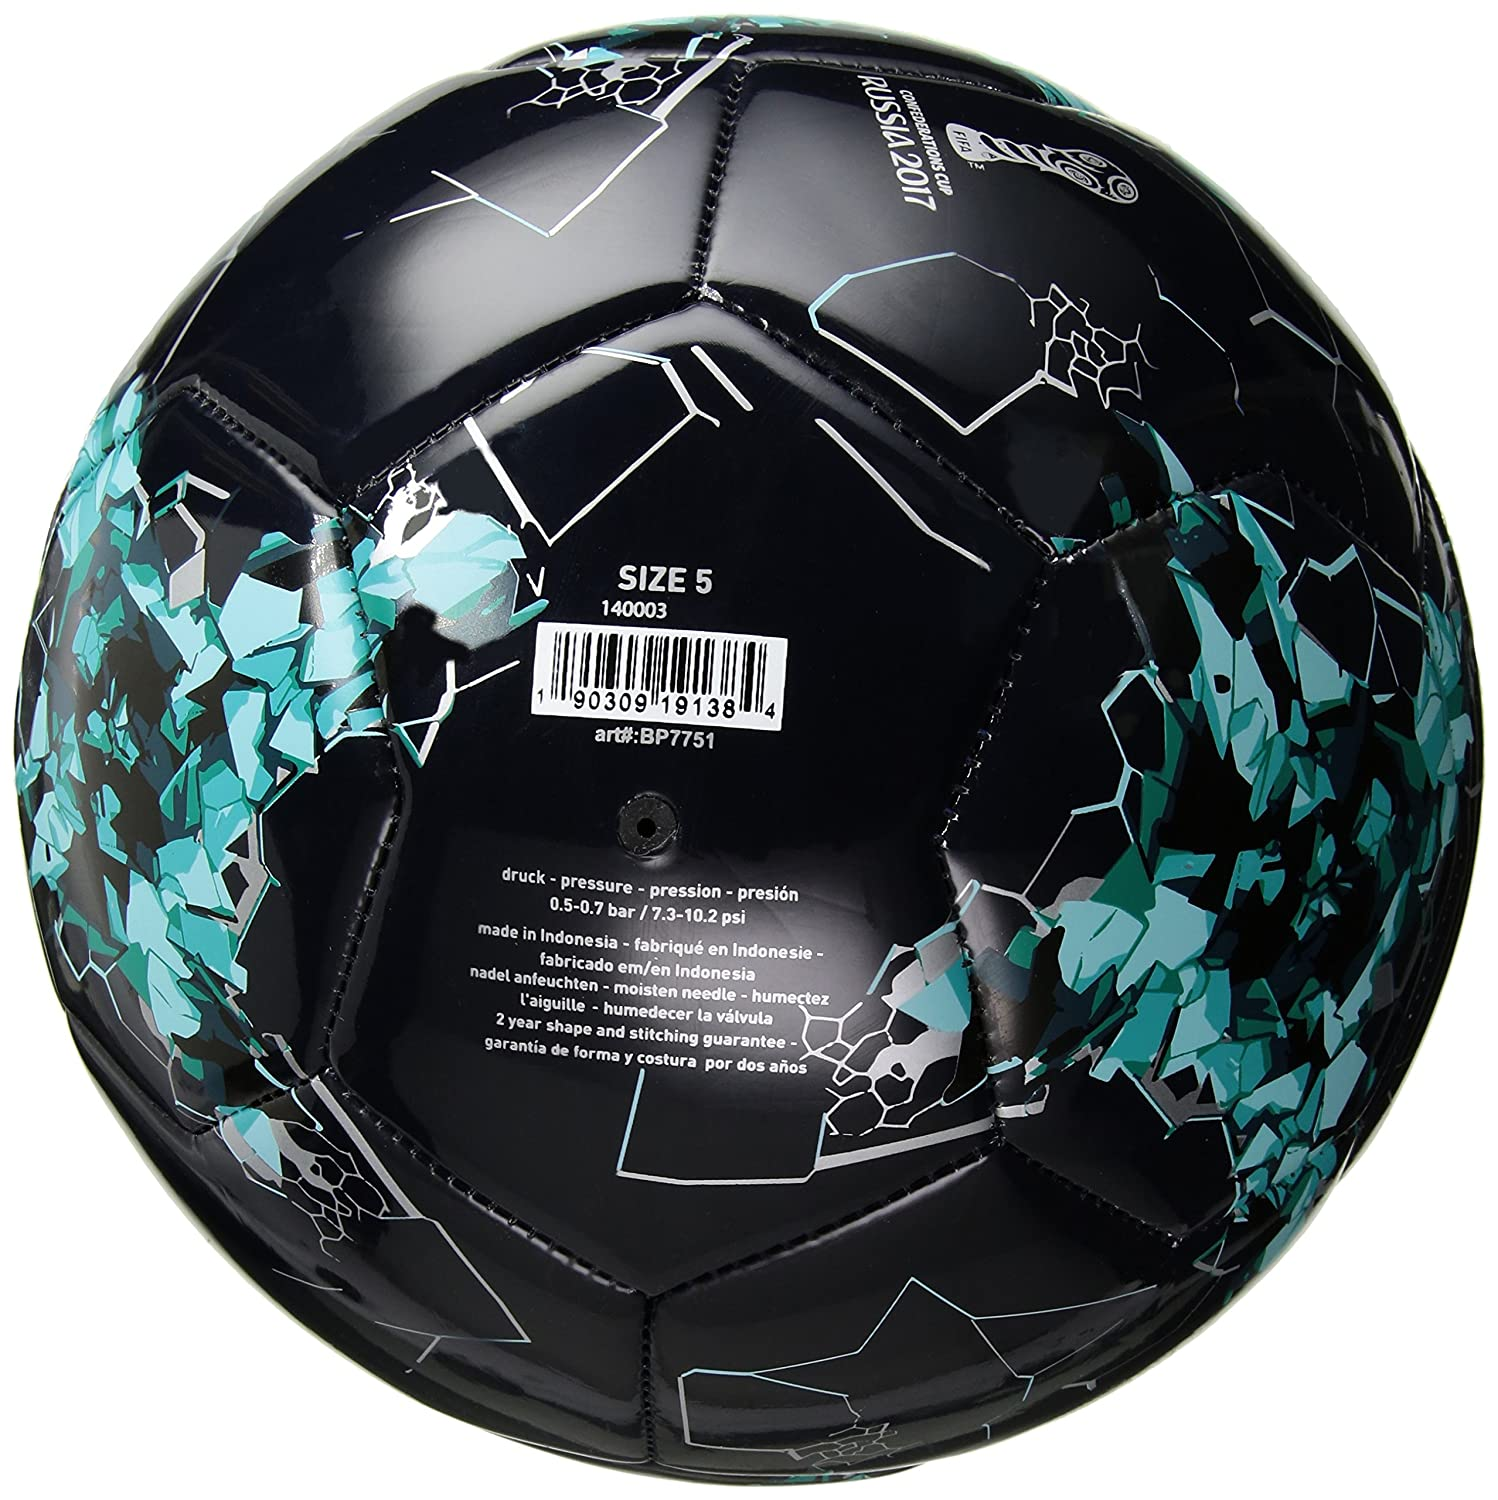 Amazon.com : adidas Performance Confederations Cup Glider Soccer Ball : Sports & Outdoors